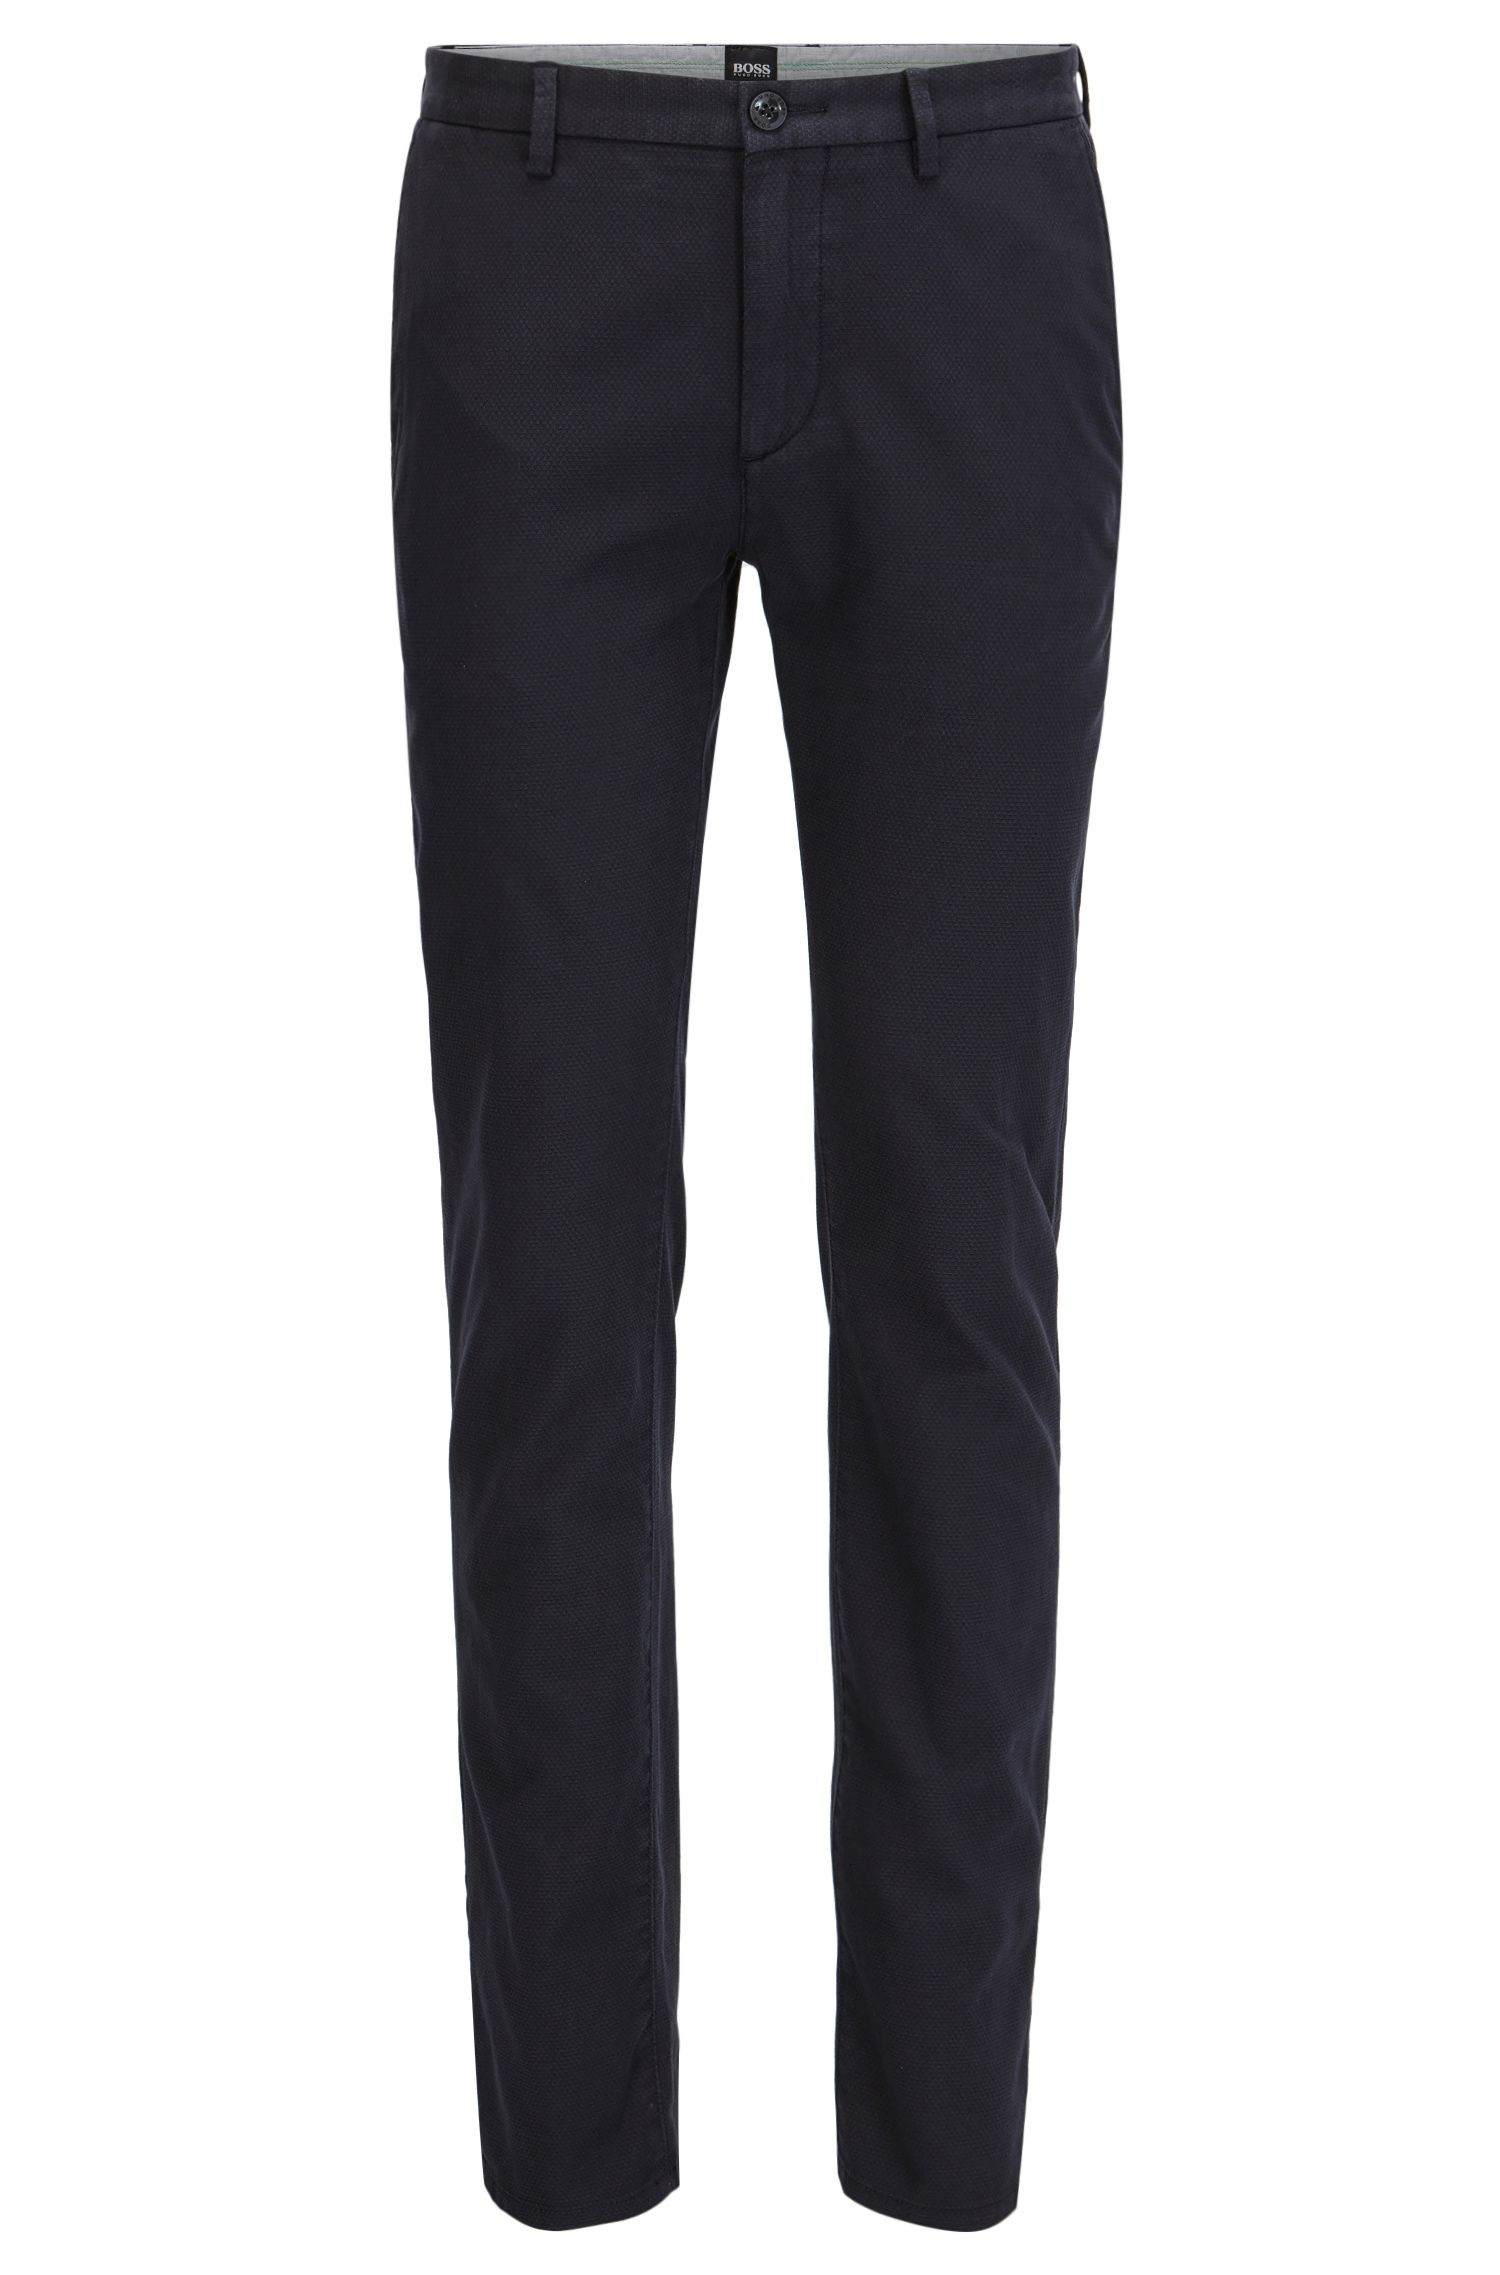 Pantalon chino Slim Fit en coton deux tons structuré